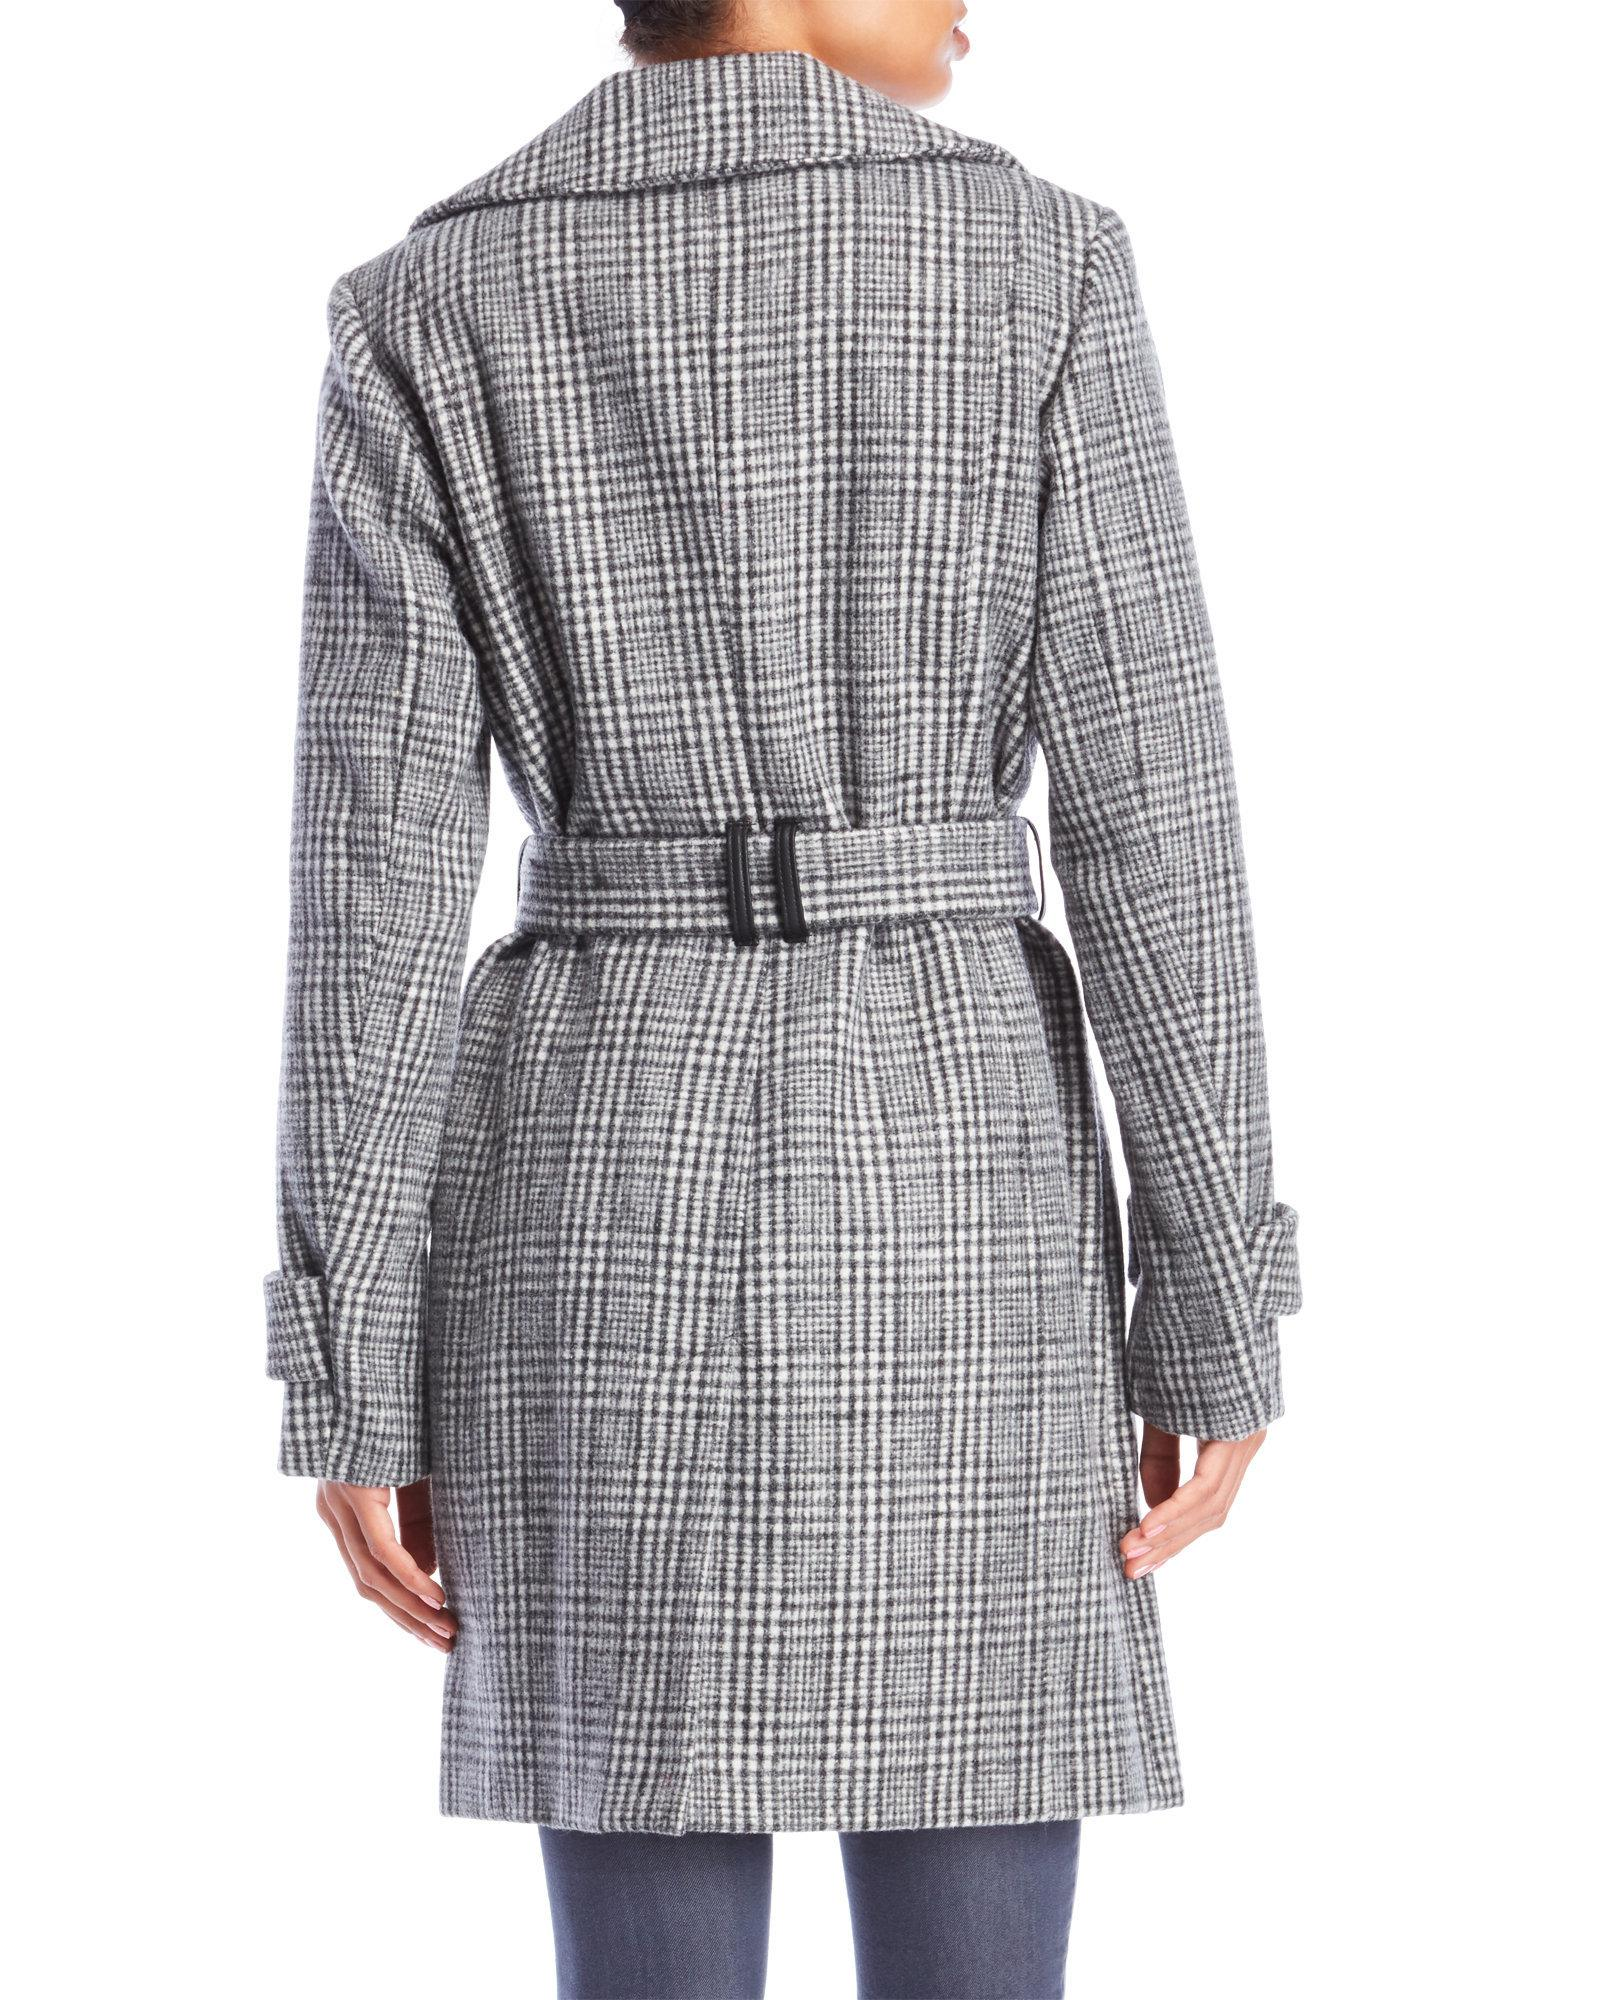 54b46d48241 Lyst - Anne Klein Grey Plaid Double Breasted Trench Coat in Gray